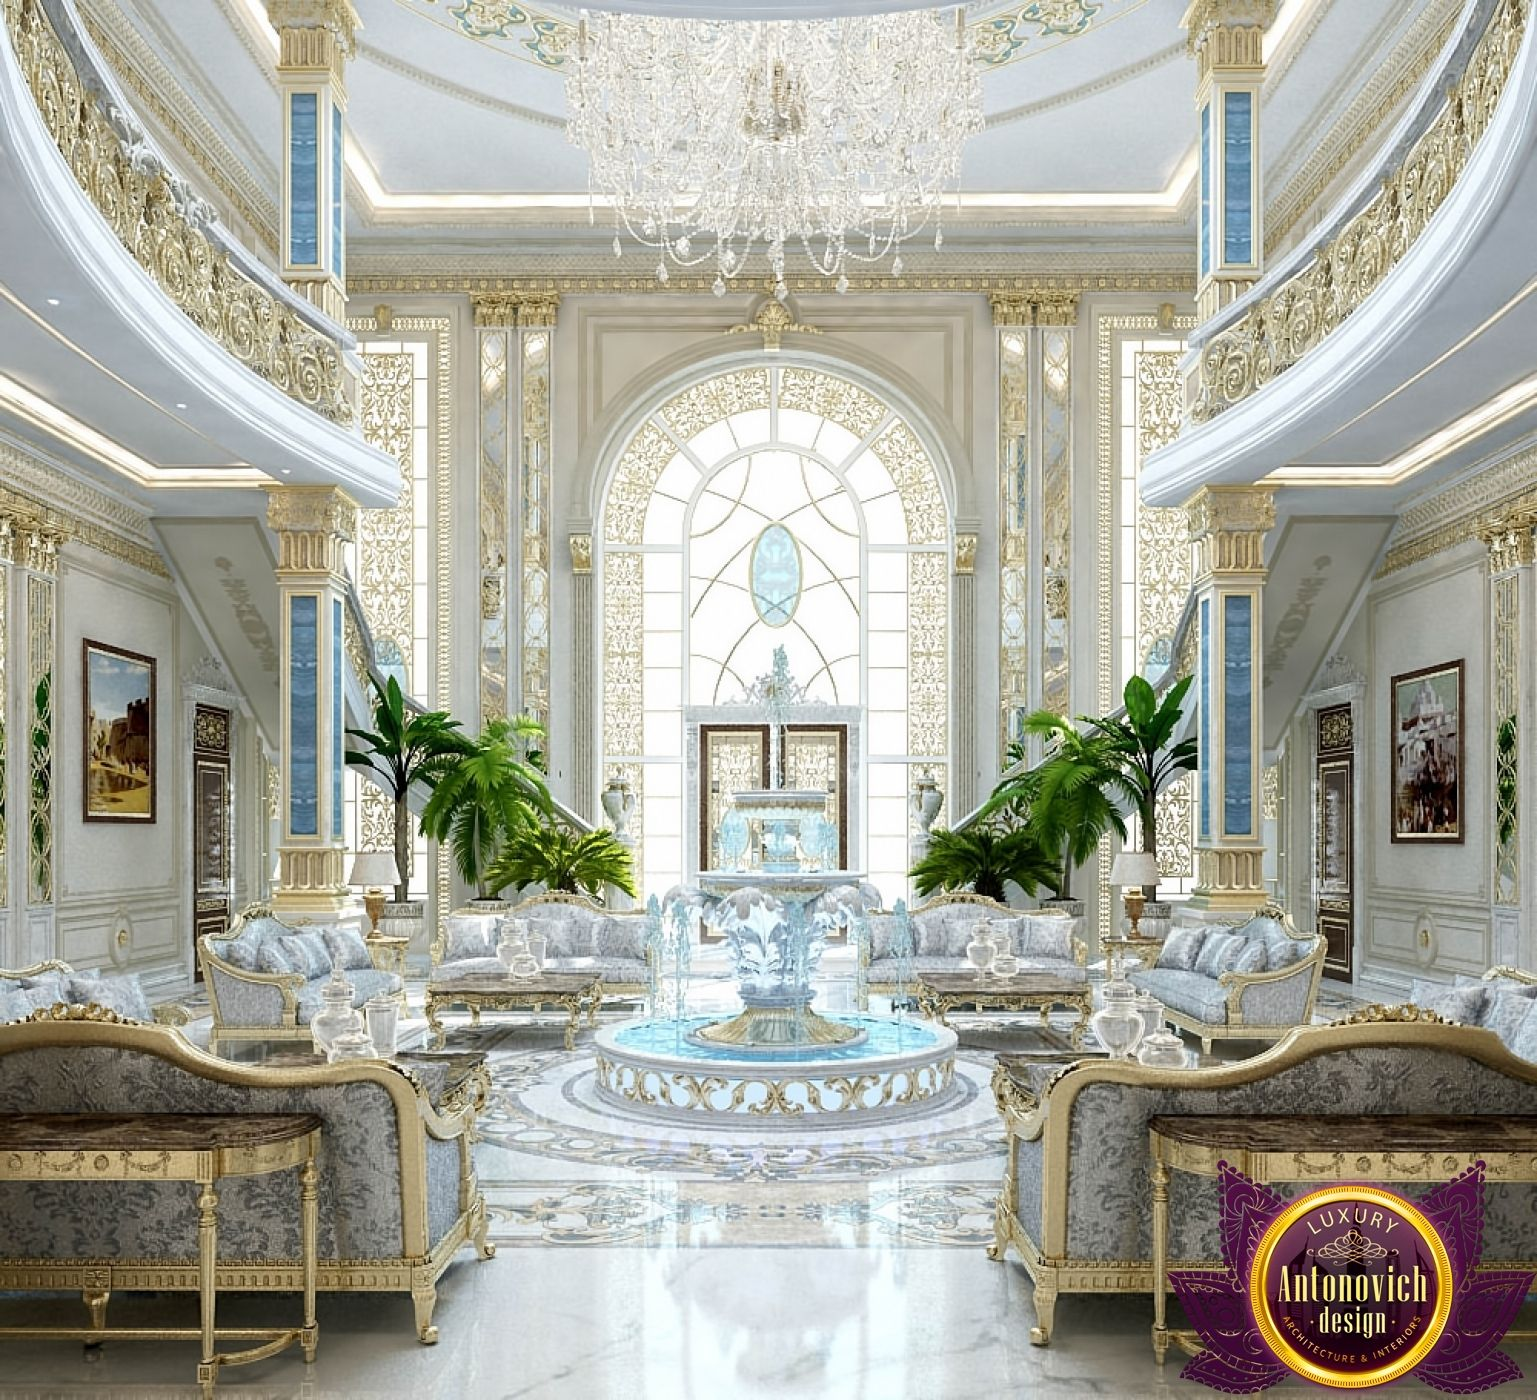 Luxury Living Room Design Ideas With Enticing Decor Inside: Entrance Design In Dubai, Luxury Royal Main Entrance